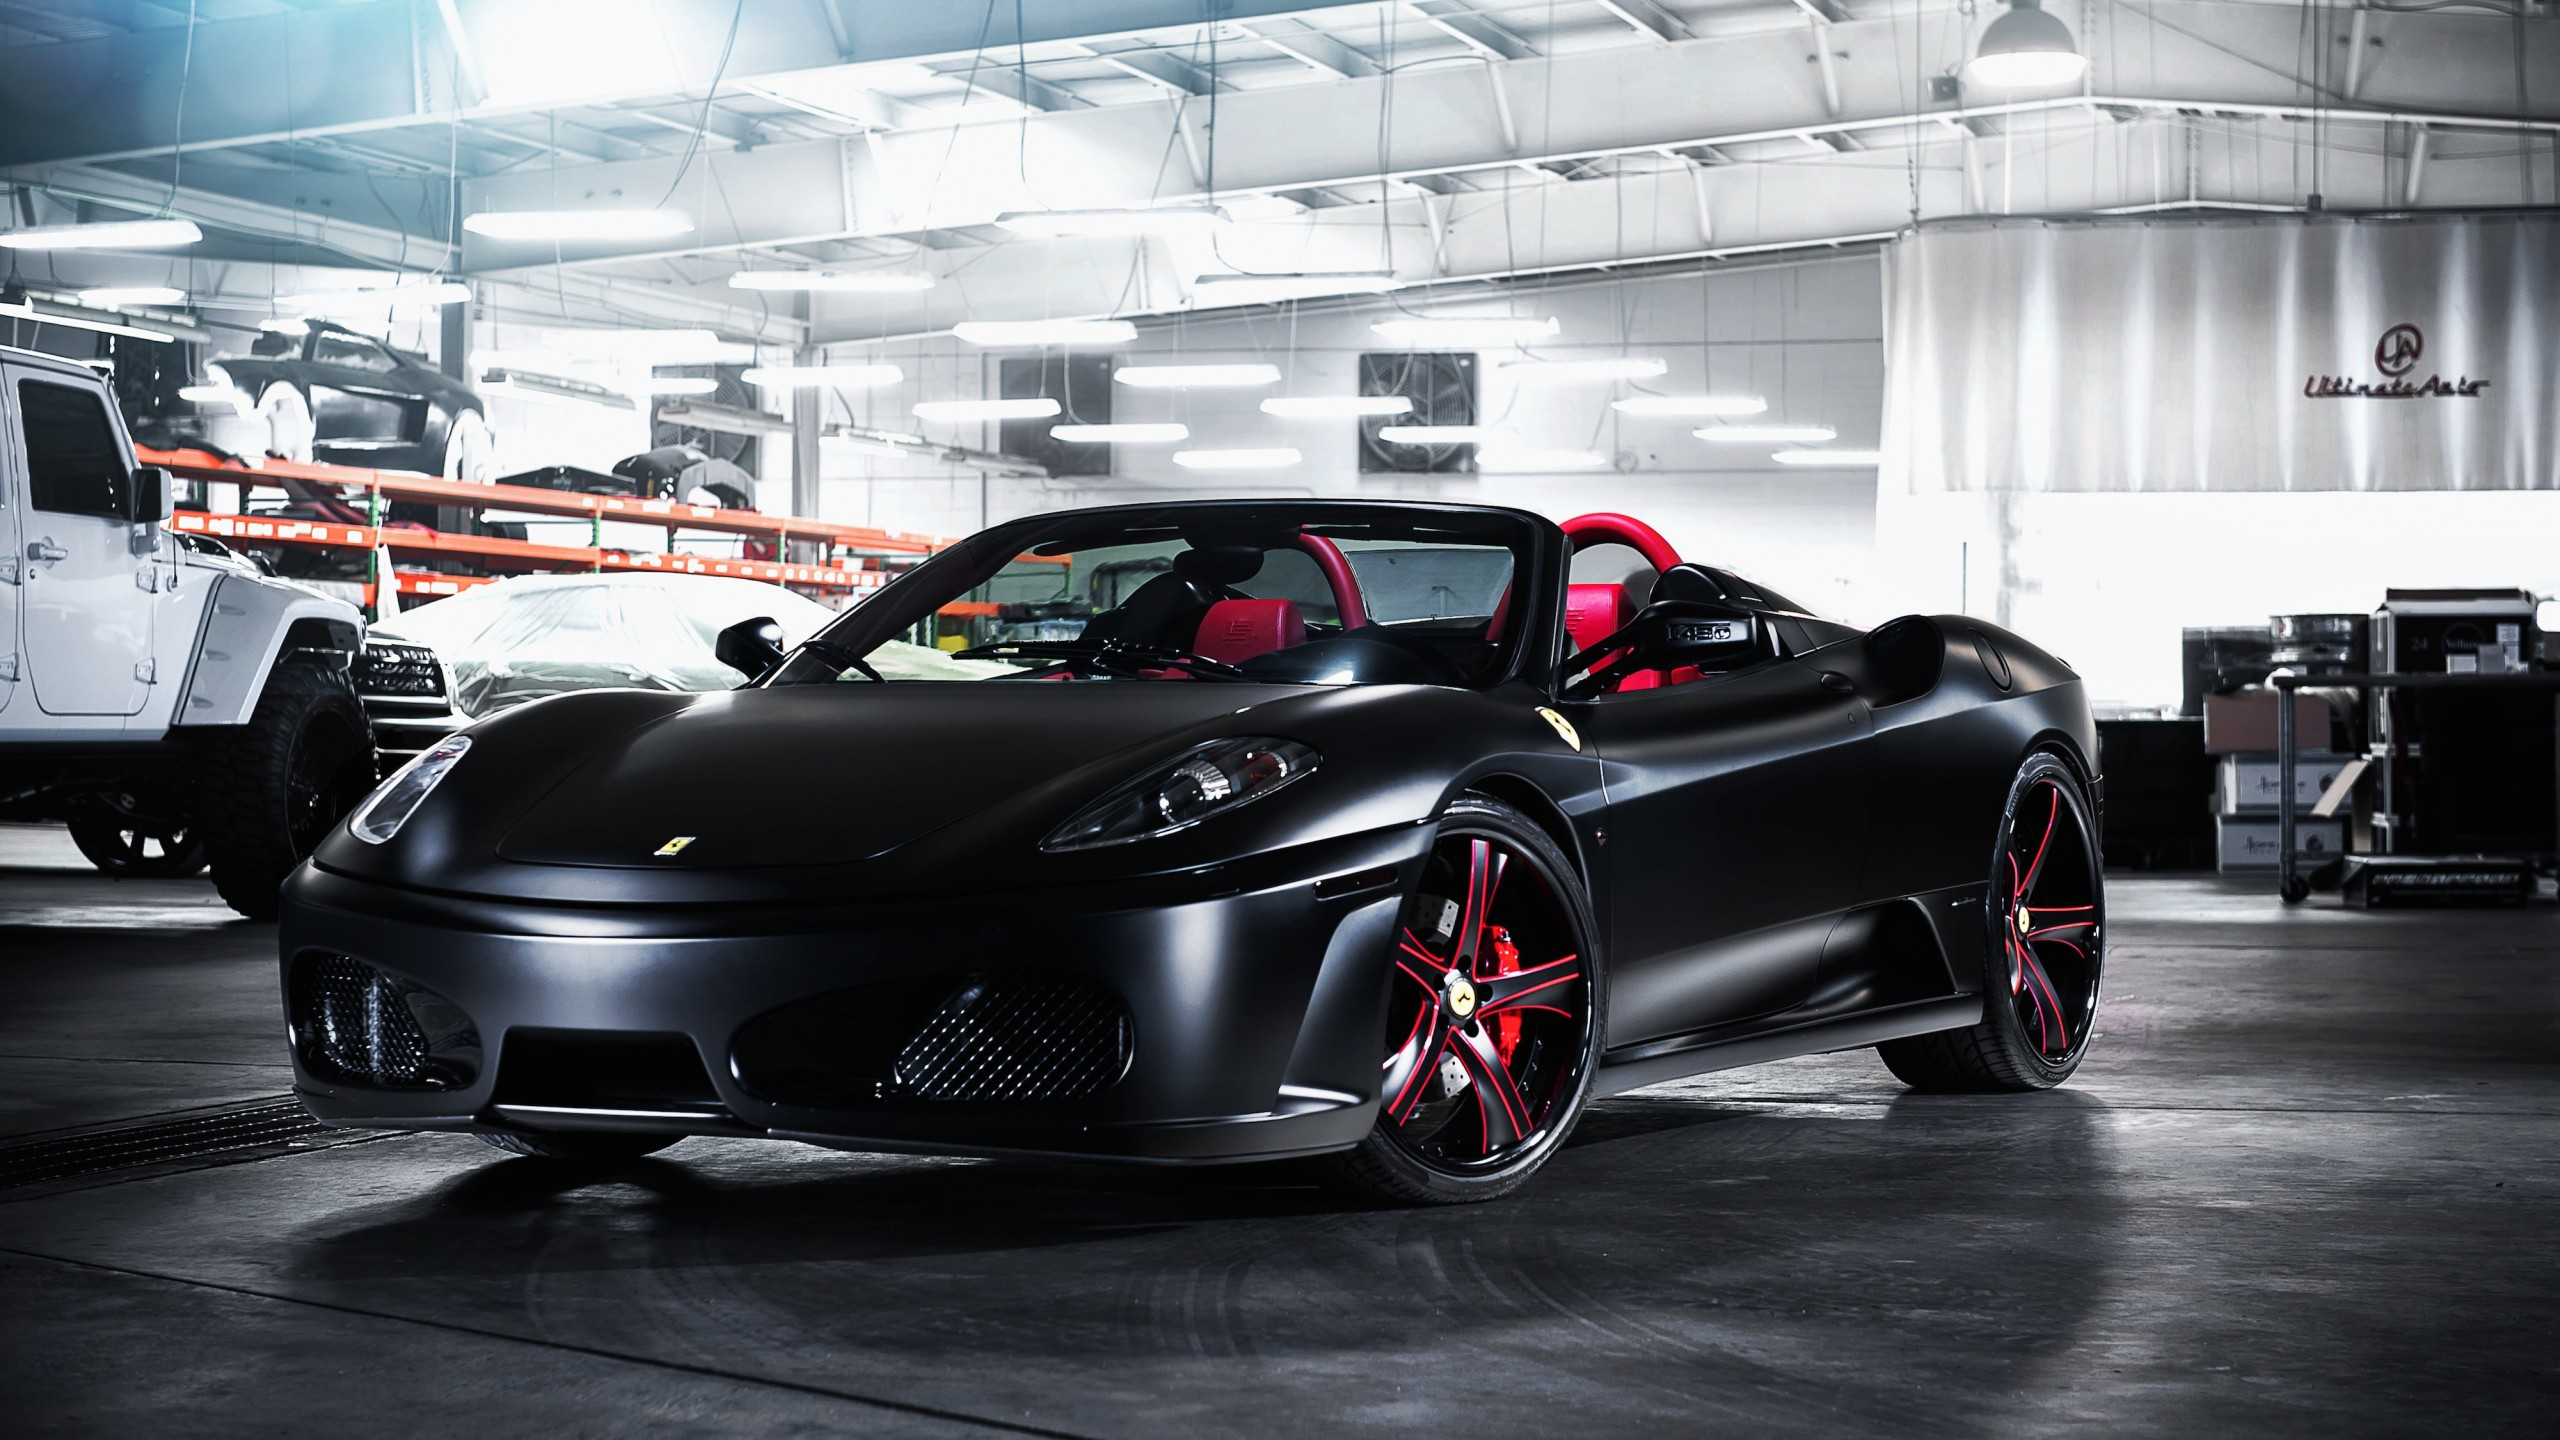 Matte Black Ferrari F430 on Savini Wheels Wallpaper for Desktop 2560x1440